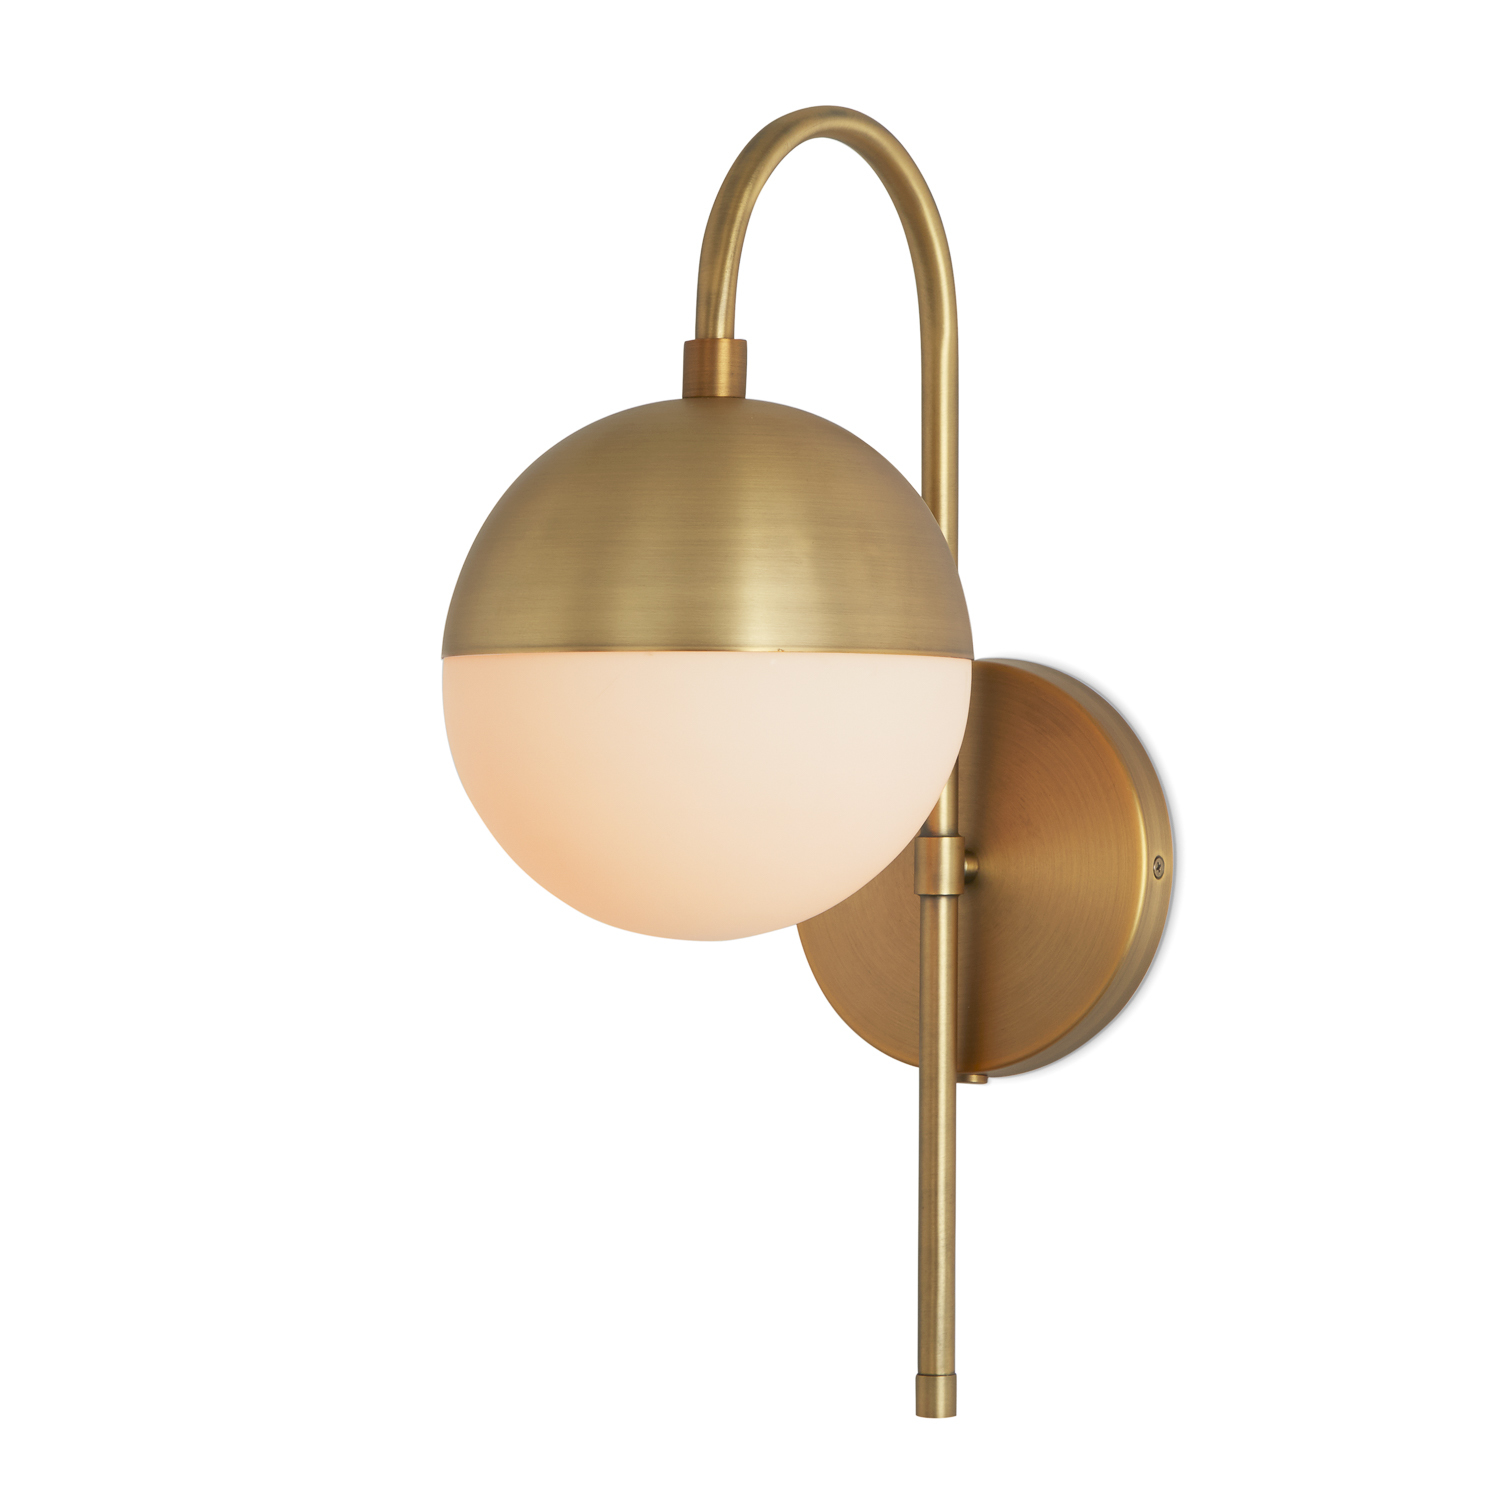 Wall Lamps Brass : Lights.com Wall Lights Powell Wall Sconce with Hooded White Globe, Aged Brass